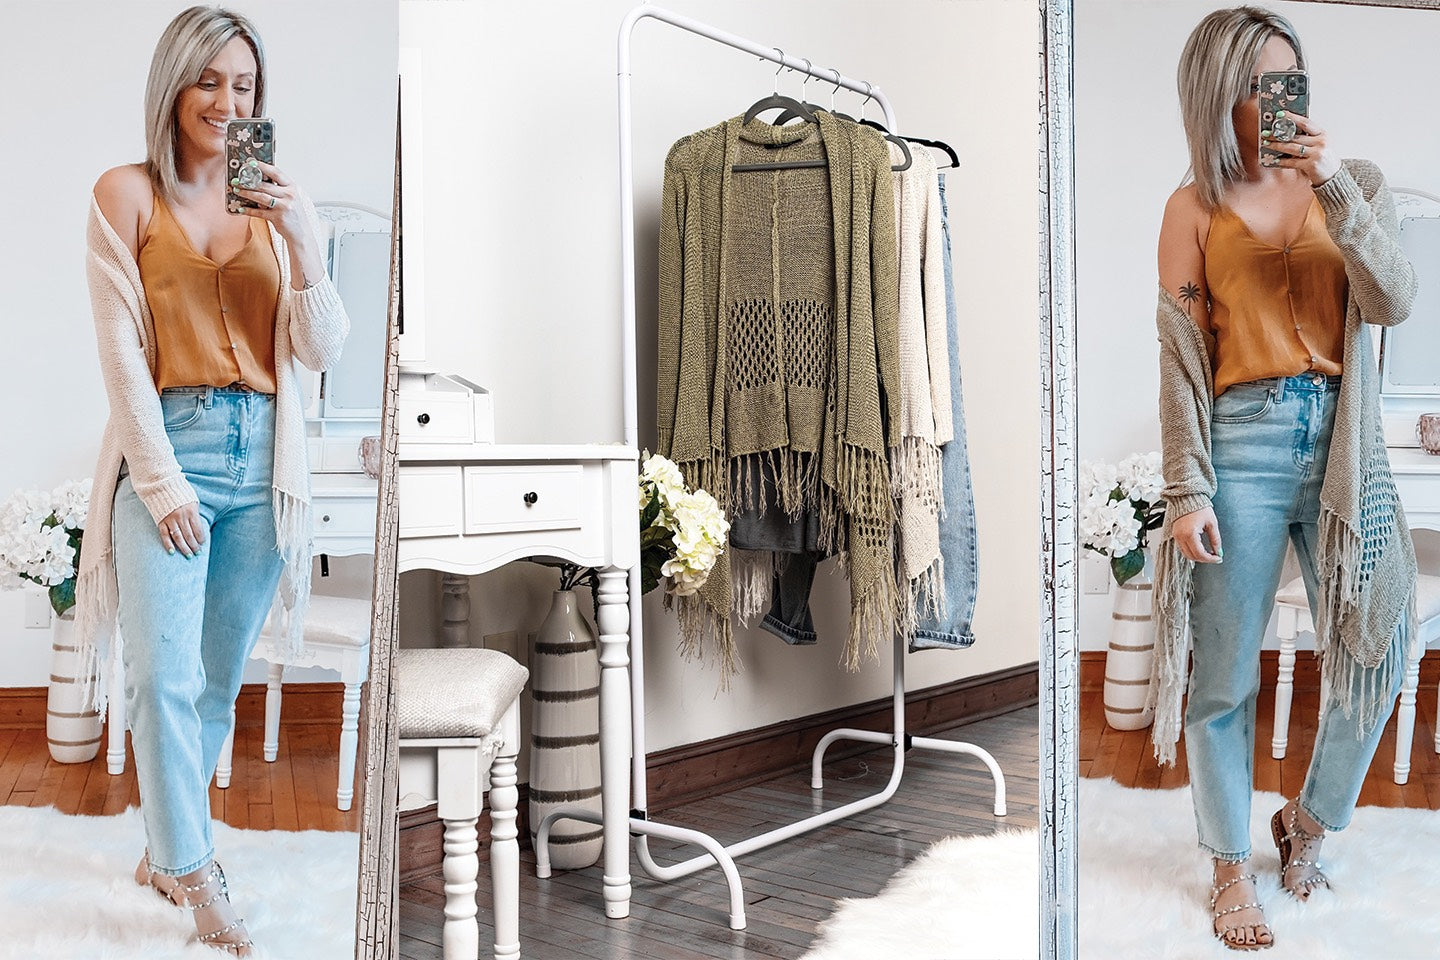 photo collage of woman modeling spring style clothing in a bright white room with white furniture